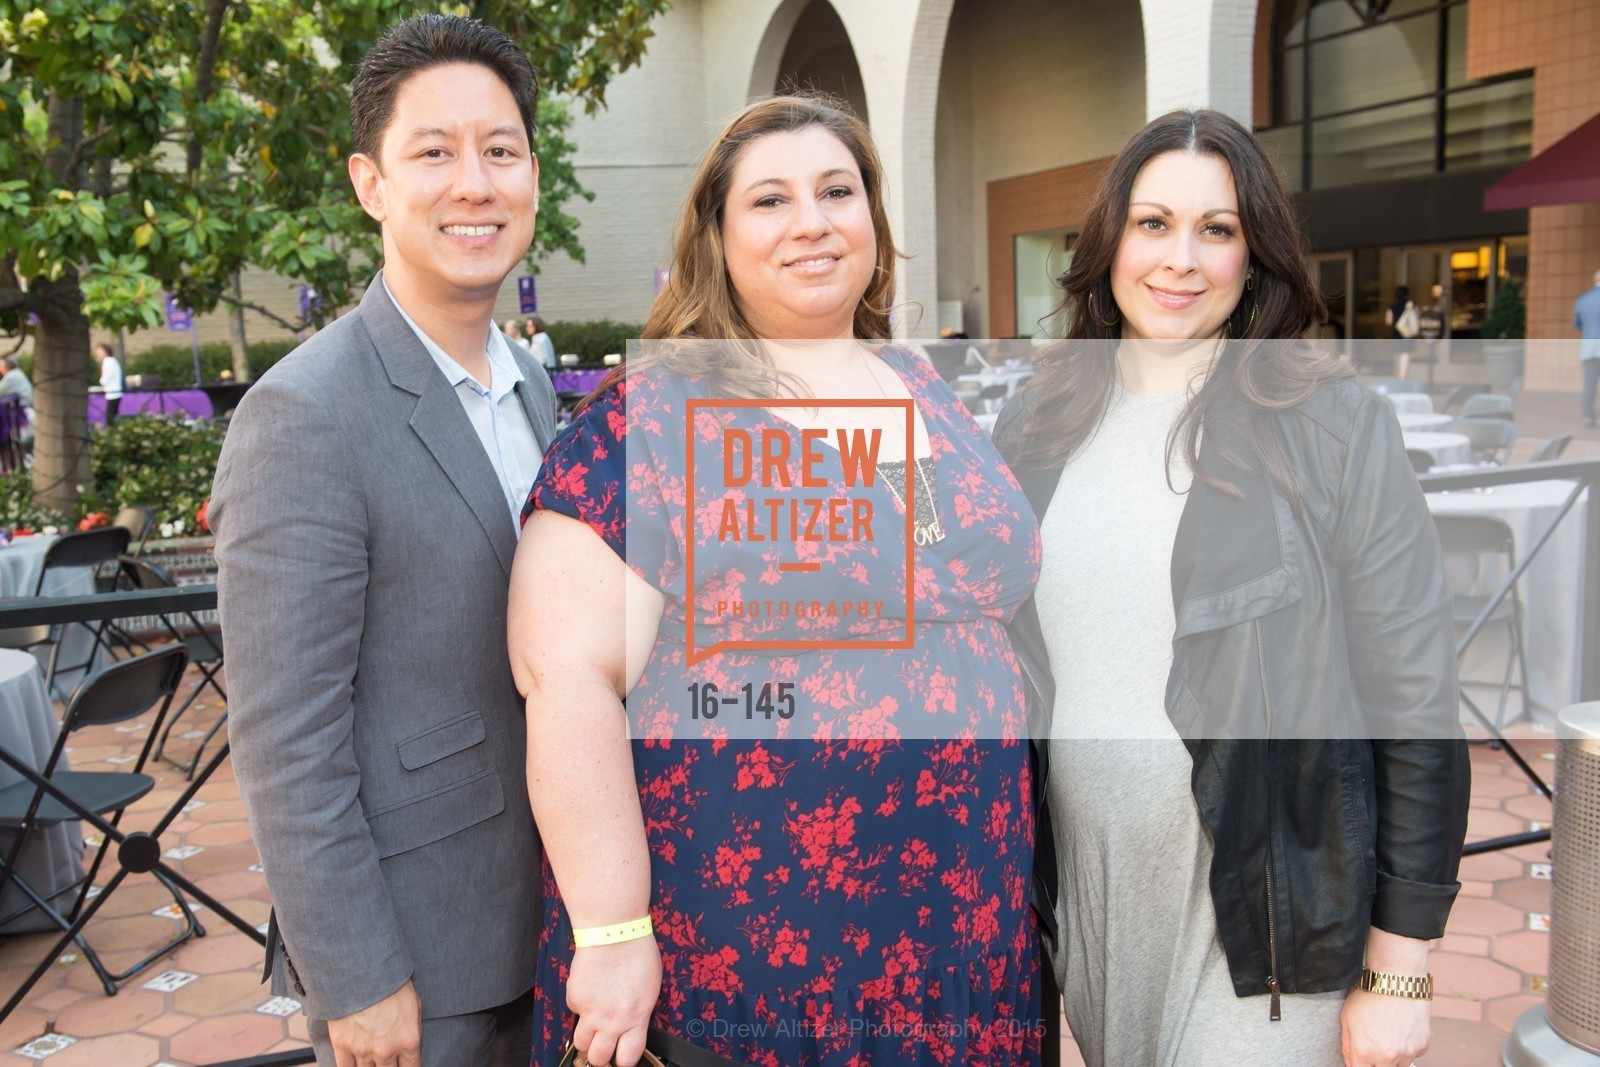 Ryan Meirose, Christa Williams, Jennifer Carroll, DREAMS HAPPEN: Playhouse Auction and Gala, Stanford Shopping Center, June 5th, 2015,Drew Altizer, Drew Altizer Photography, full-service agency, private events, San Francisco photographer, photographer california